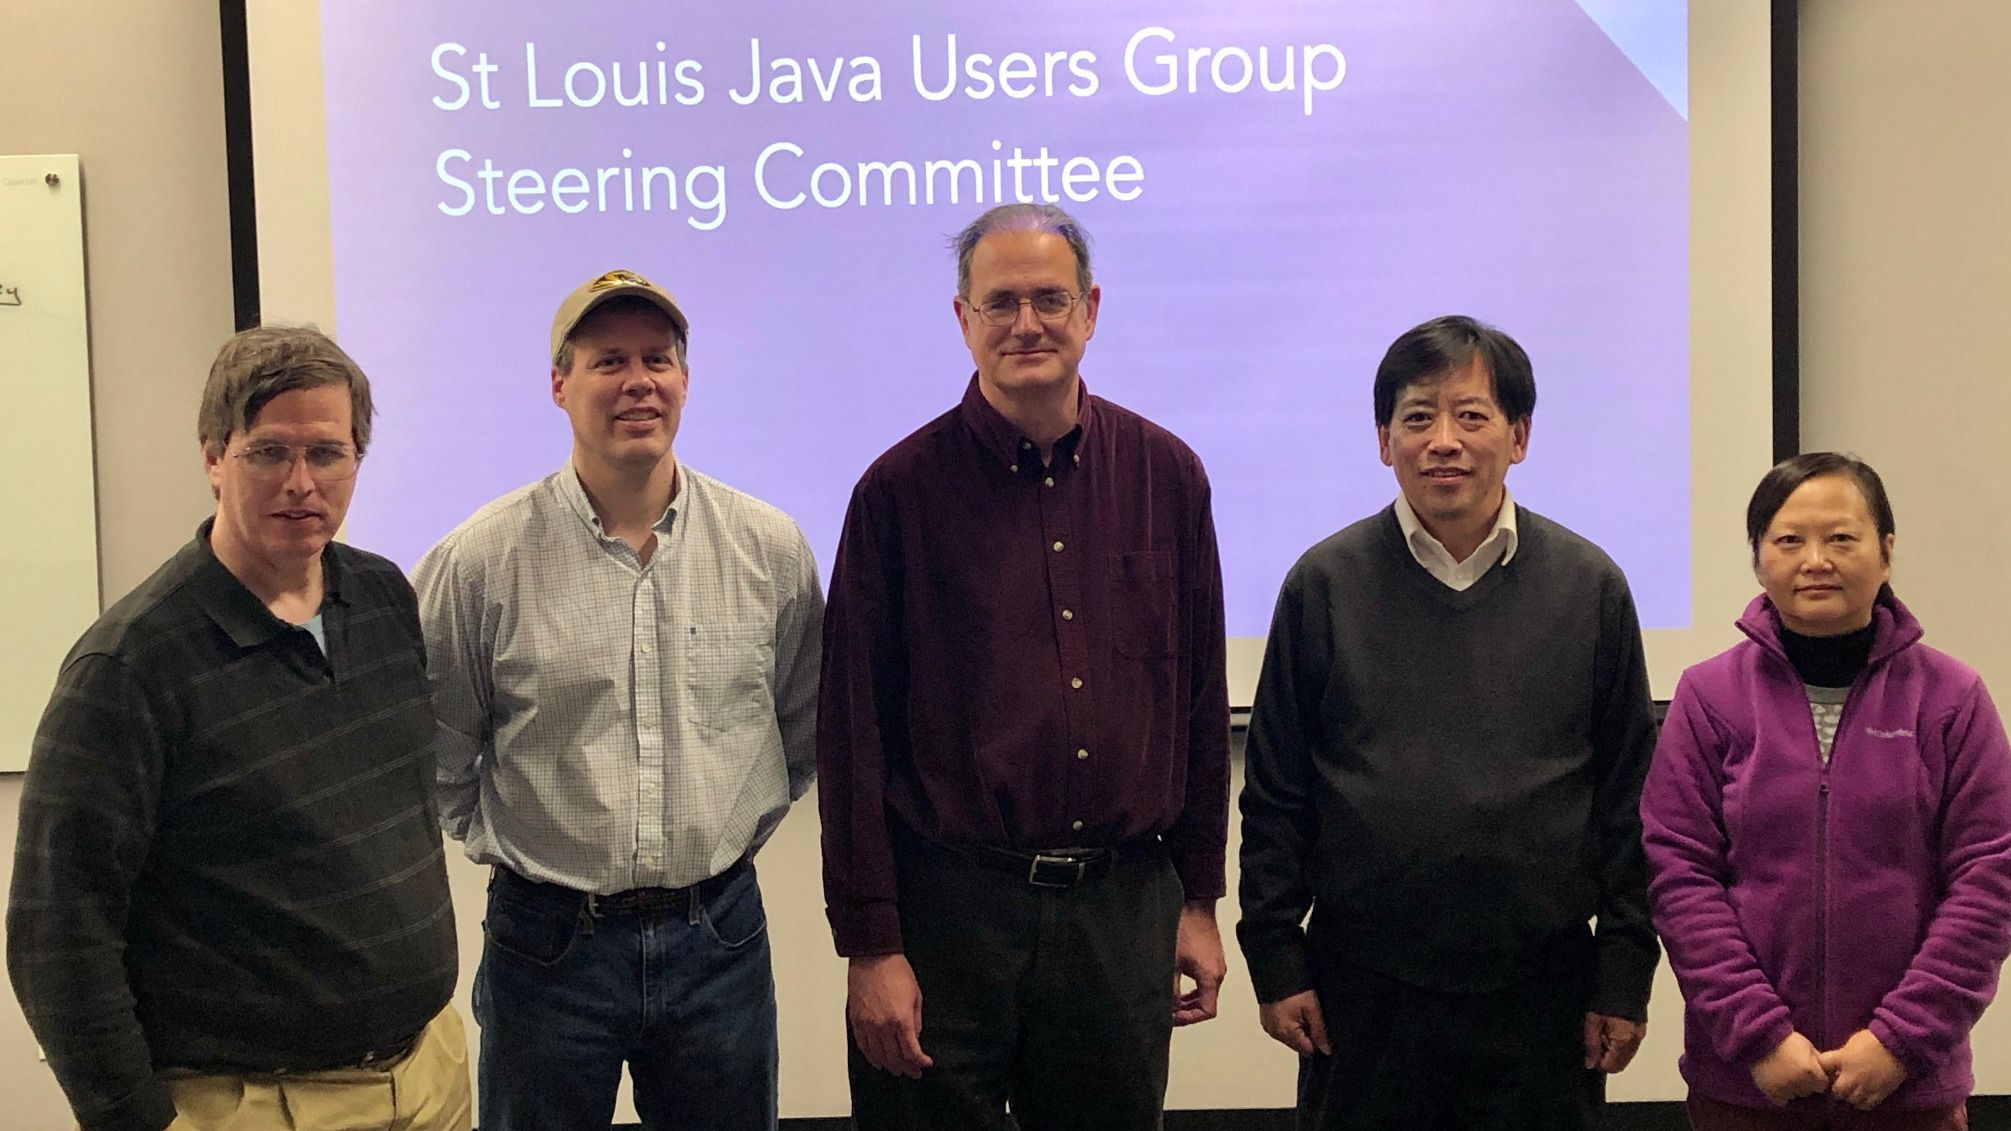 St. Louis Java User's Group